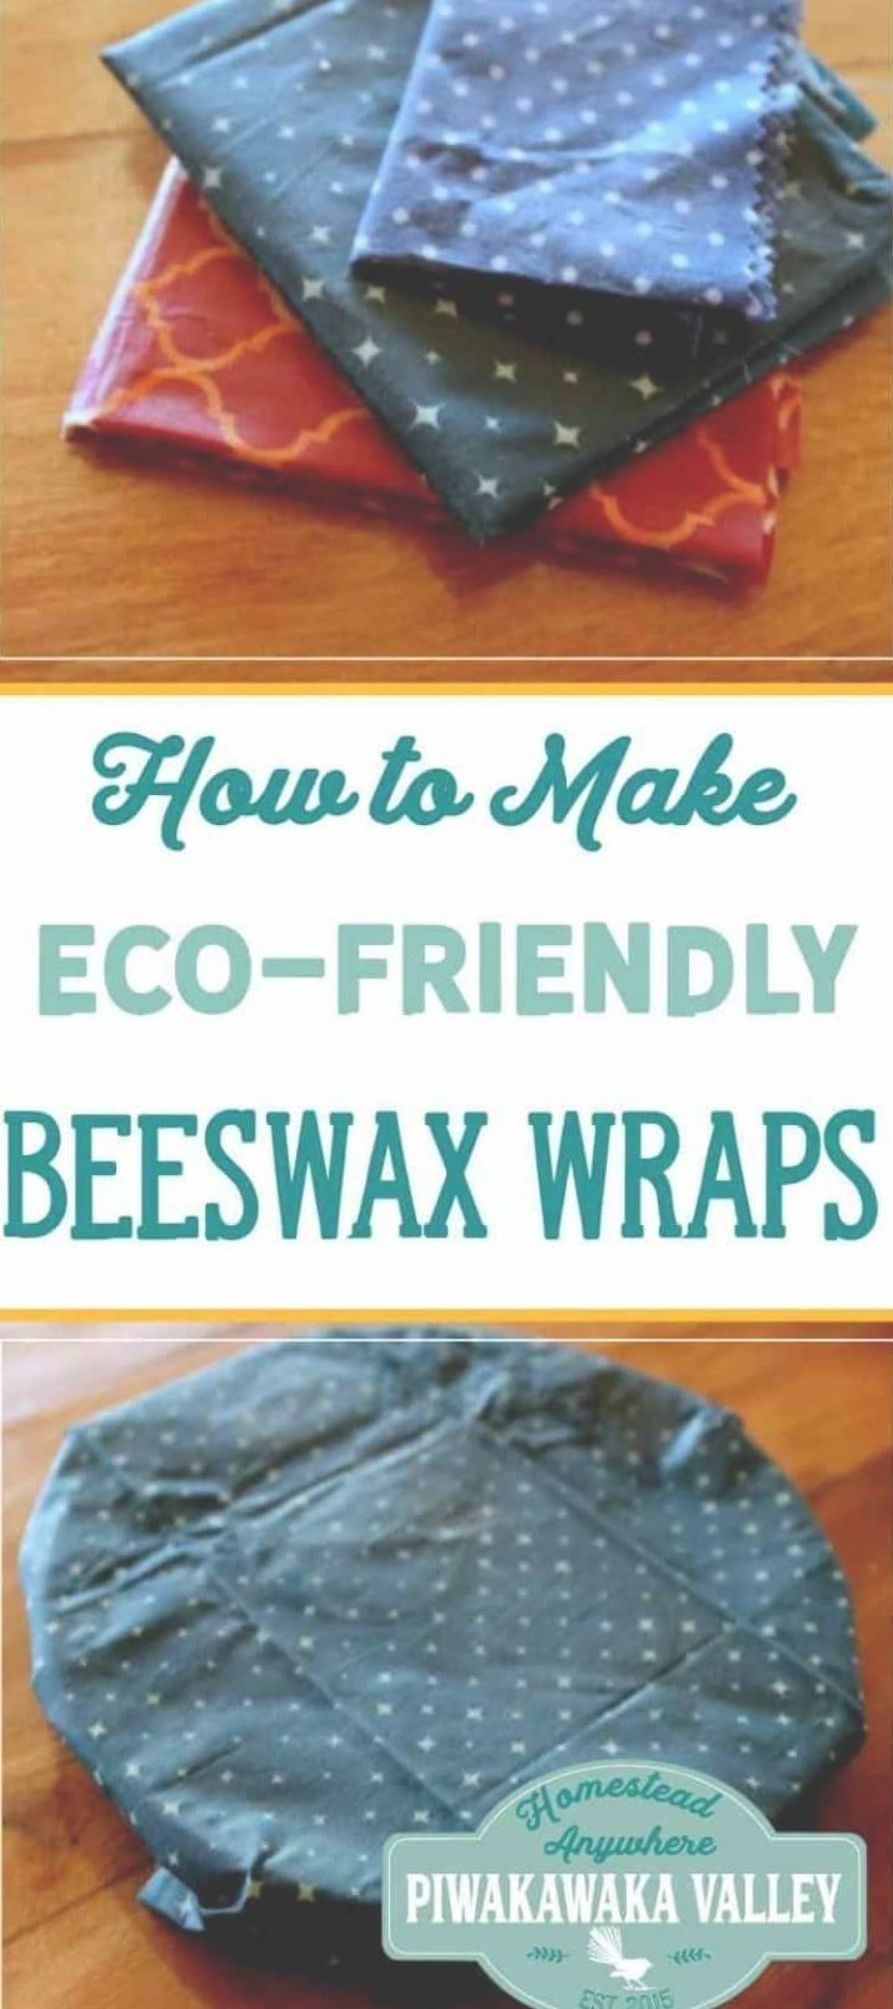 Make your own beeswax wraps as an eco-friendly alternative to clingfilm or plastic wrap. This recipe uses jojoba oil and beeswax to make a nice clingy wrap. how to make beeswax wraps, diy, make at home, zero waste kitchen #jojobaoil